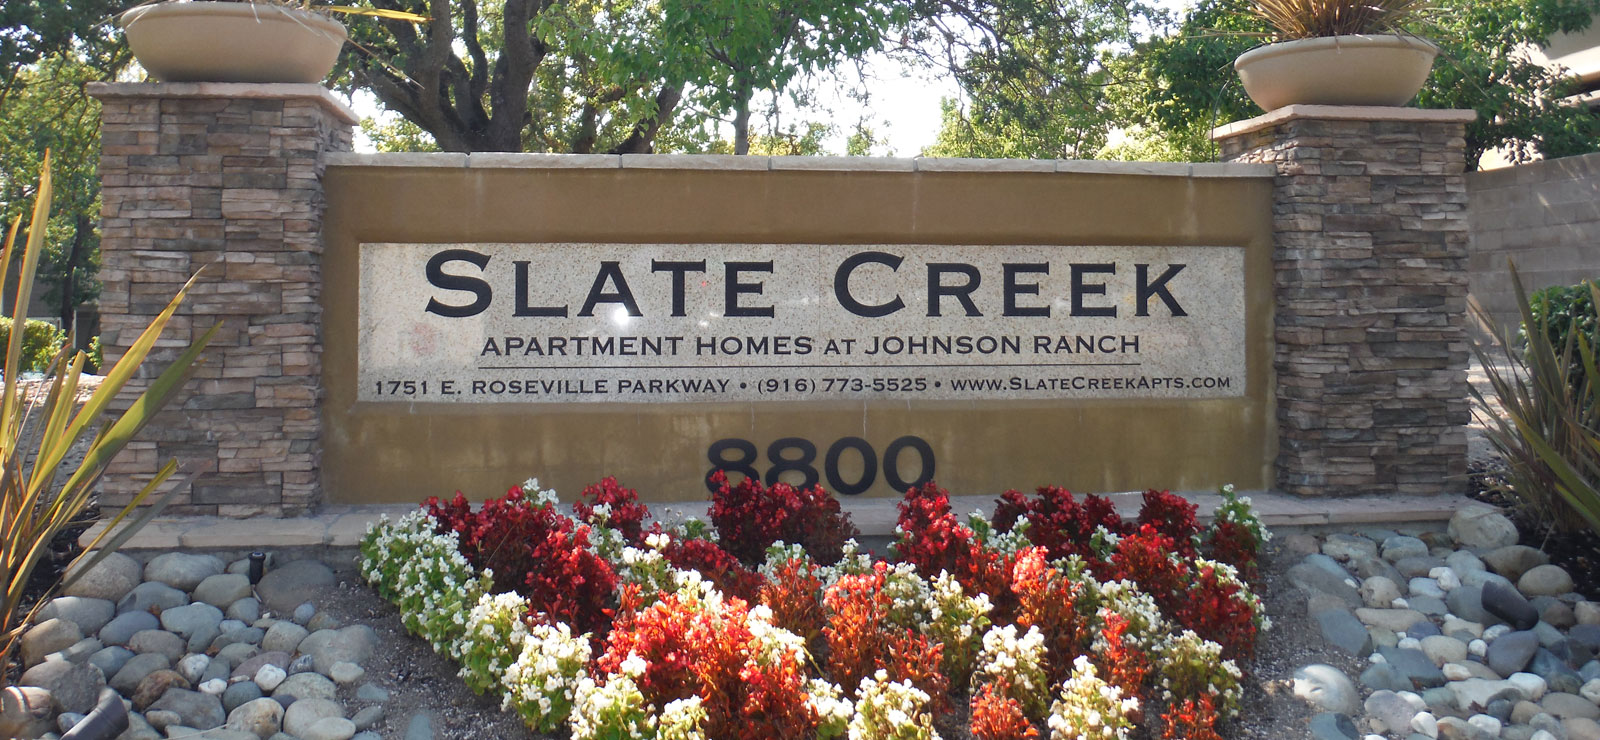 Slate Creek FPI Management Inc.